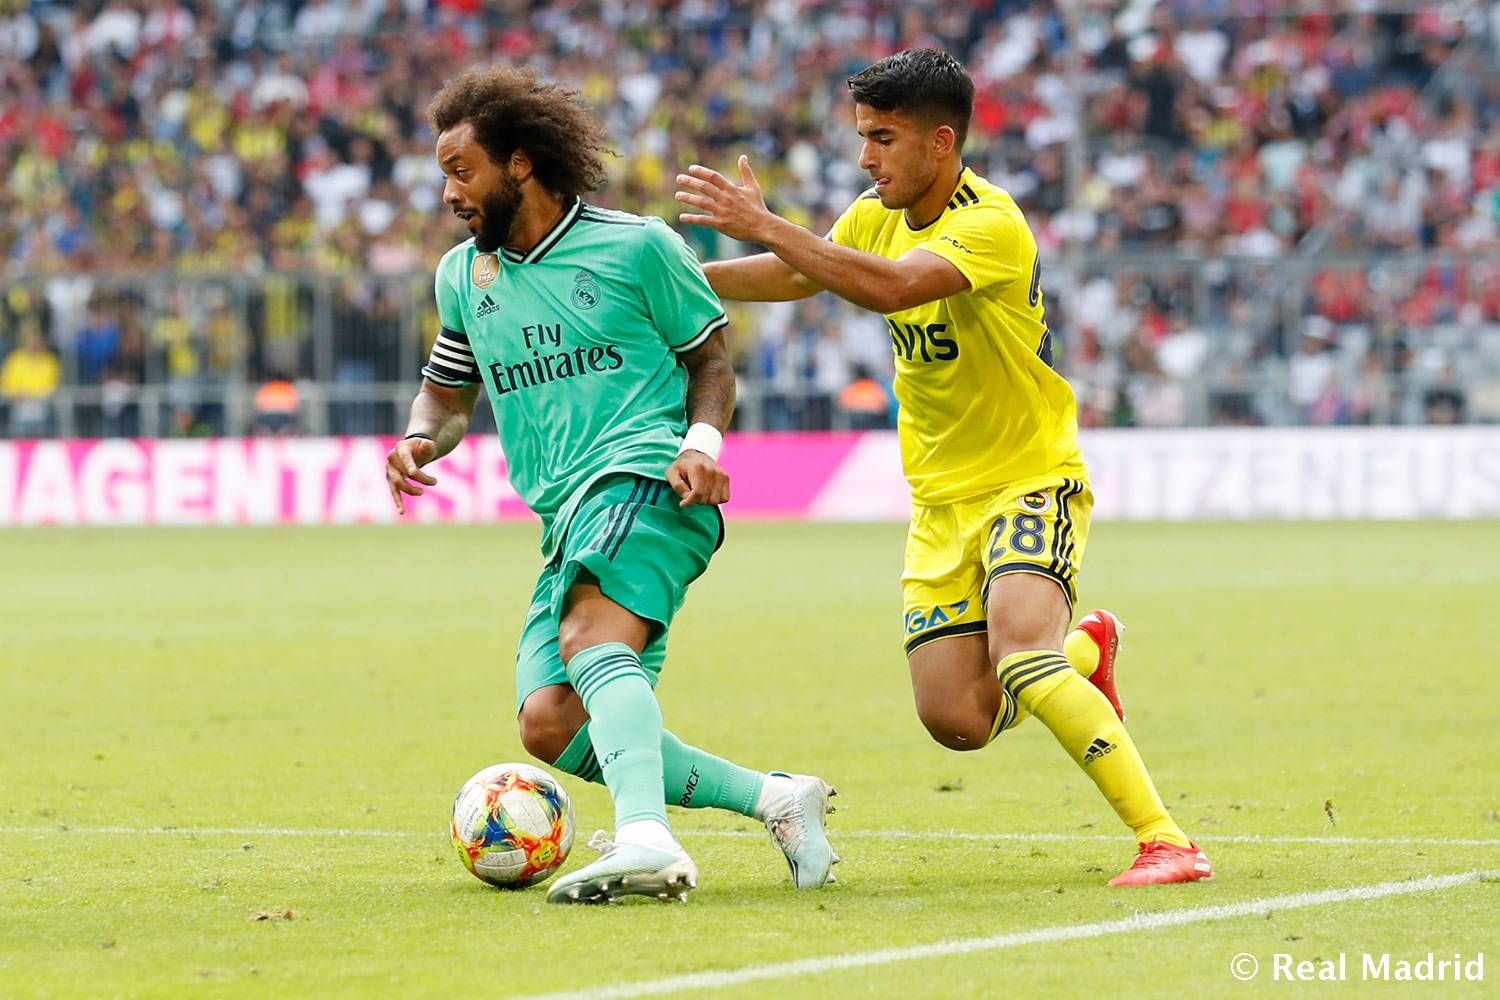 Real Madrid - Real Madrid - Fenerbahçe - 31-07-2019